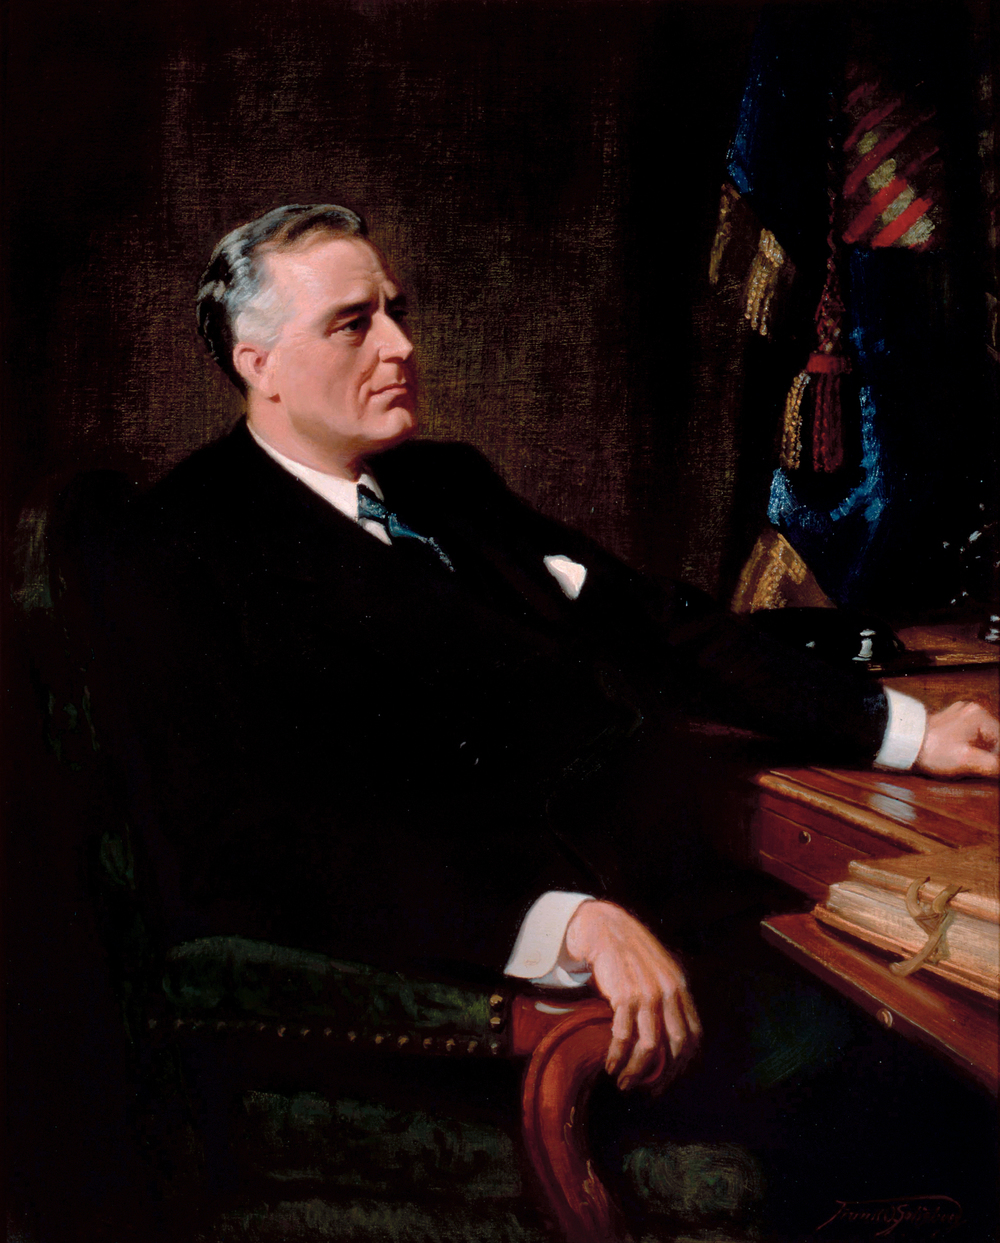 Click photo to download. Caption: A portrait of president Franklin D. Roosevelt, whose administration oversaw America's response to the Holocaust. Credit: Franklin O. Salisbury via Wikimedia Commons.